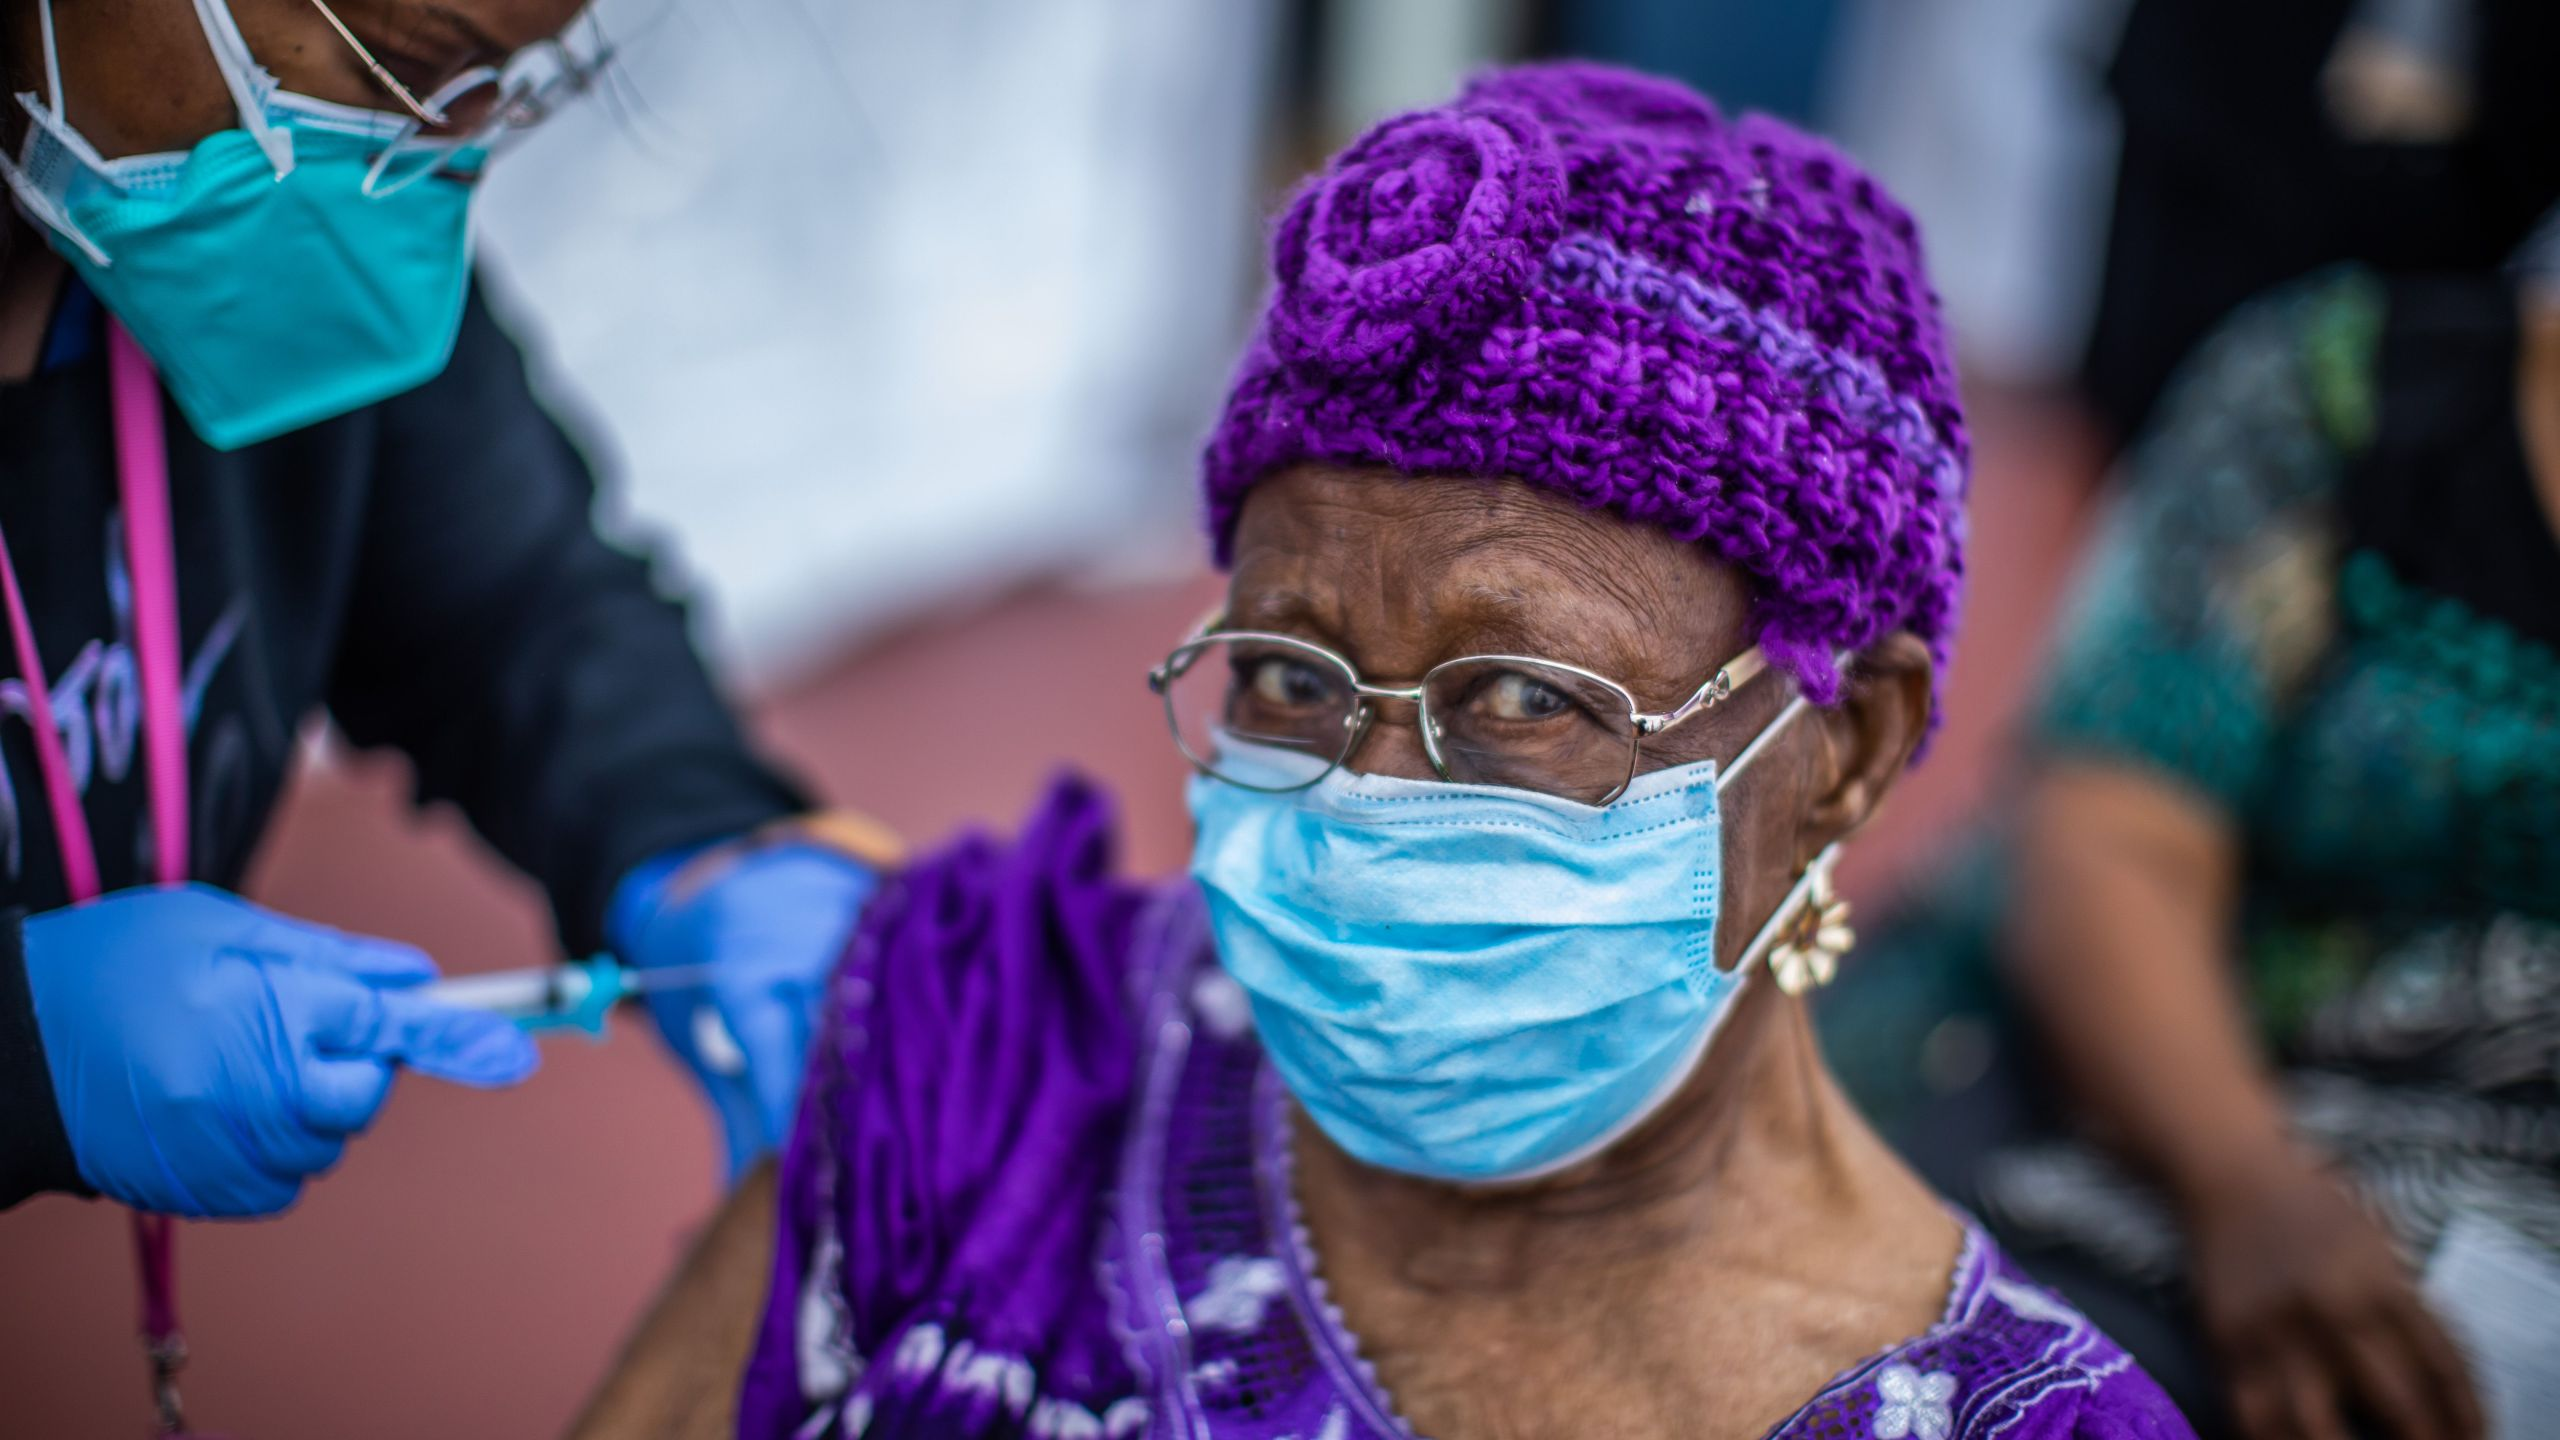 Registered Nurse Ebony Thomas administers a Moderna Covid-19 vaccine to Cecilia Onwytalu, 89, at Kedren Community Health Center, in South Central Los Angeles on February 16, 2021. (Photo by APU GOMES/AFP via Getty Images)